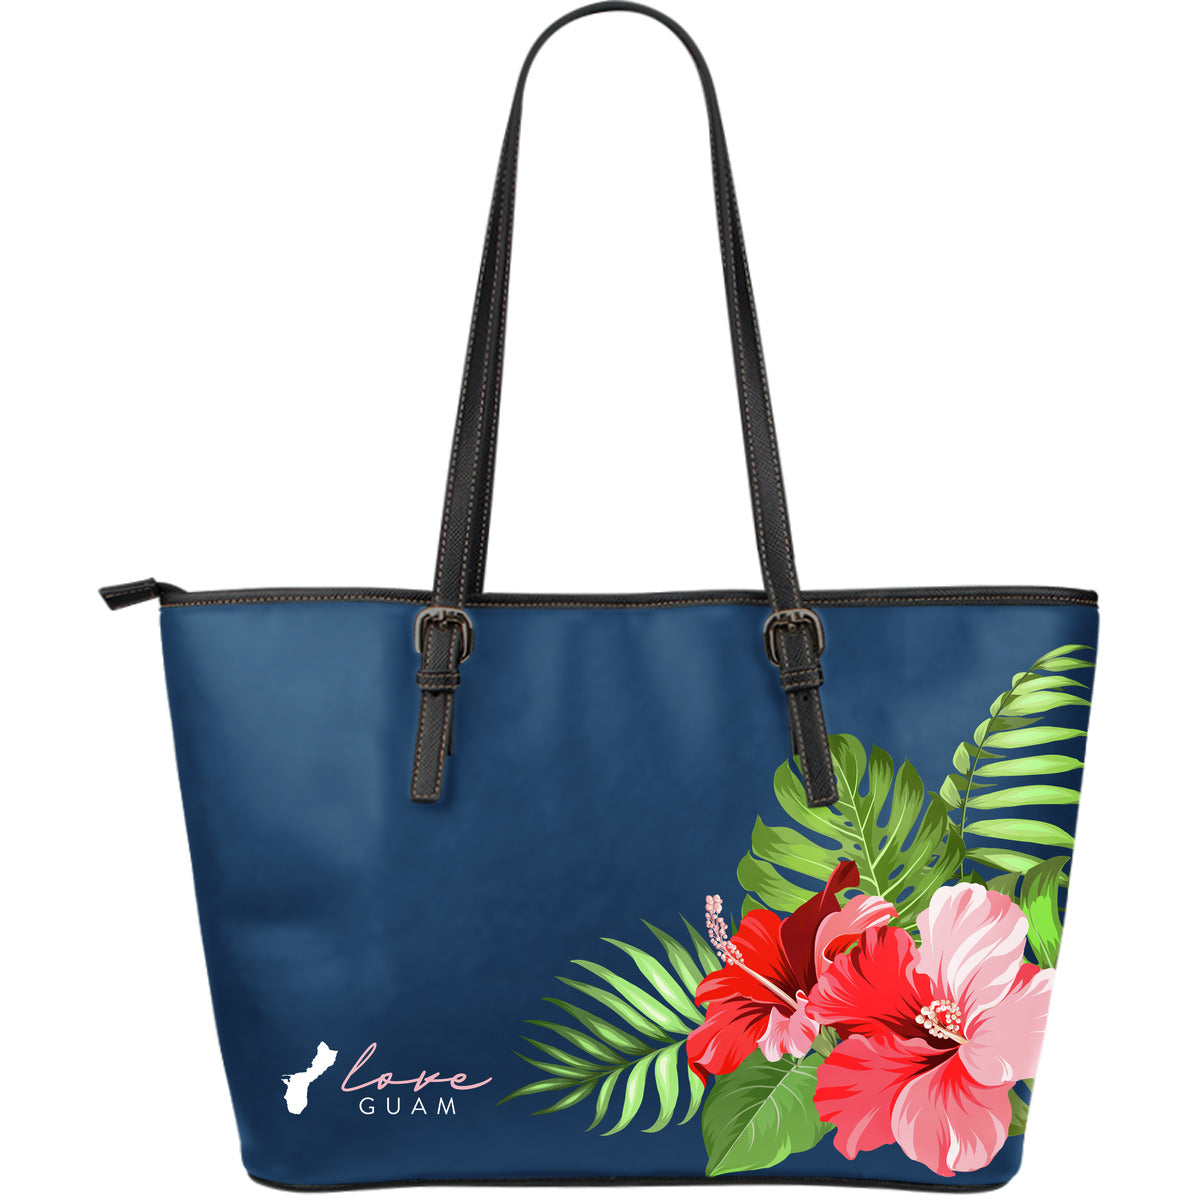 Love Guam Hibiscus Navy Blue Large Leather Tote Bag Purse